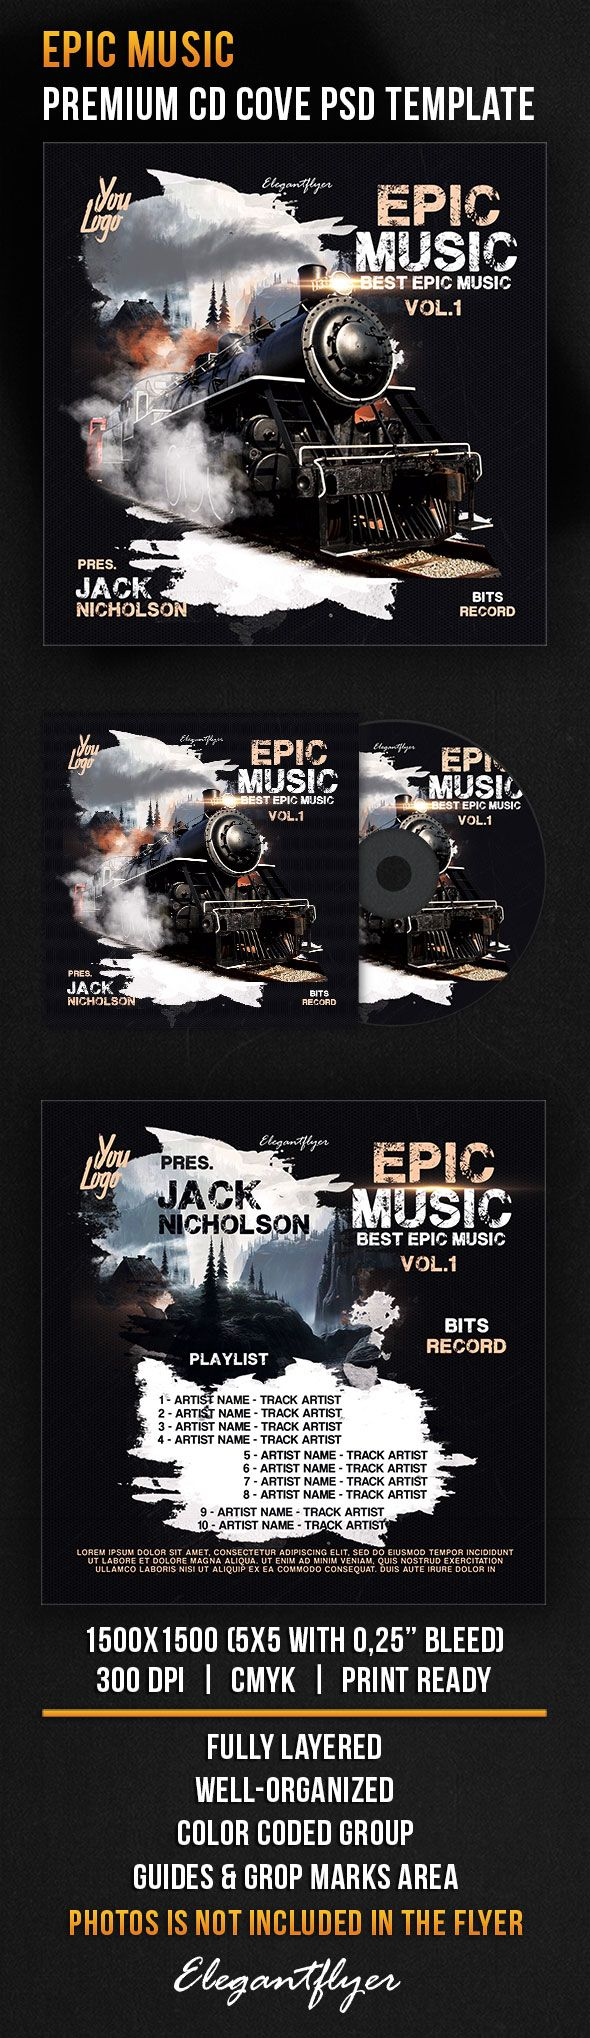 Epic Music – Premium CD Cover PSD Template